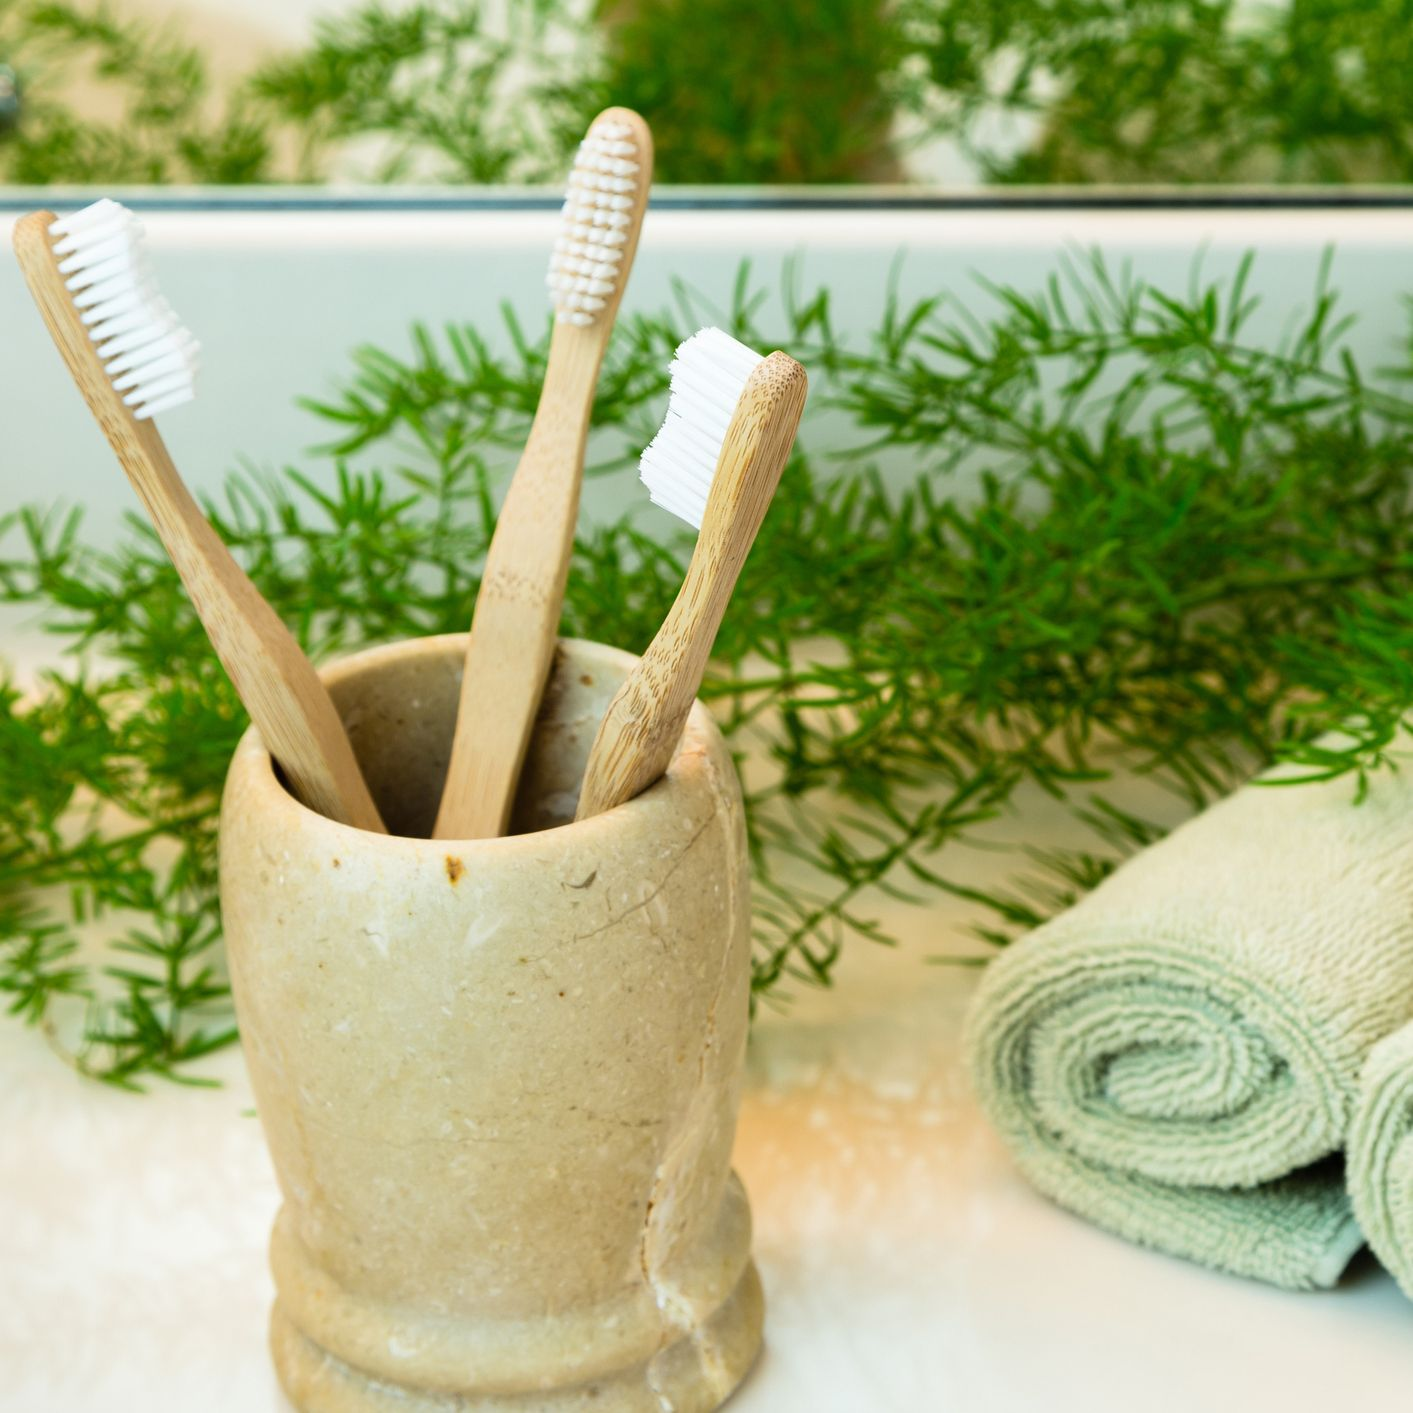 Bamboo toothbrushes in cup, towels and greens on bathroom countertop